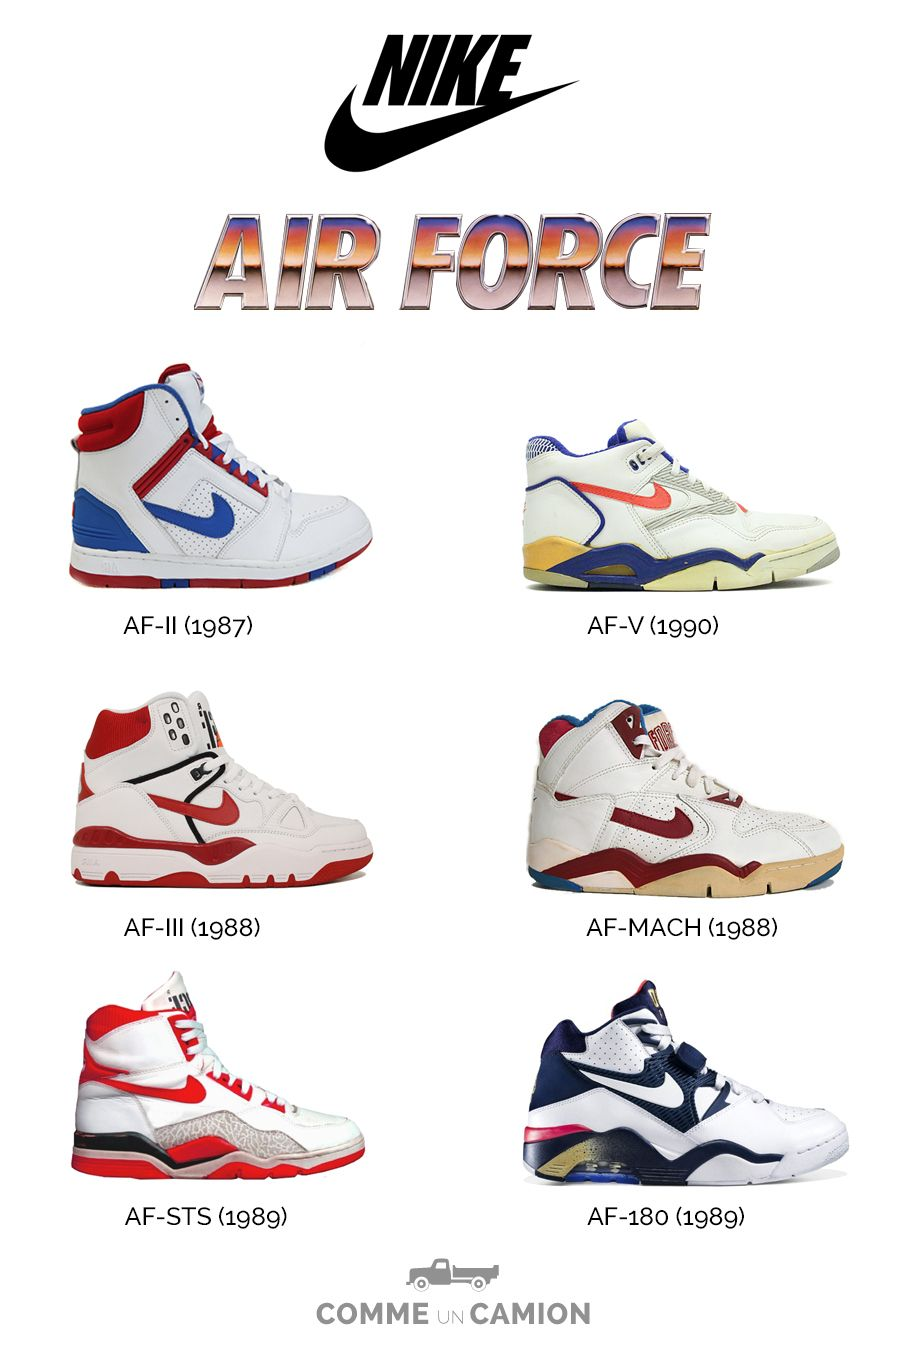 nike air force 5 1990